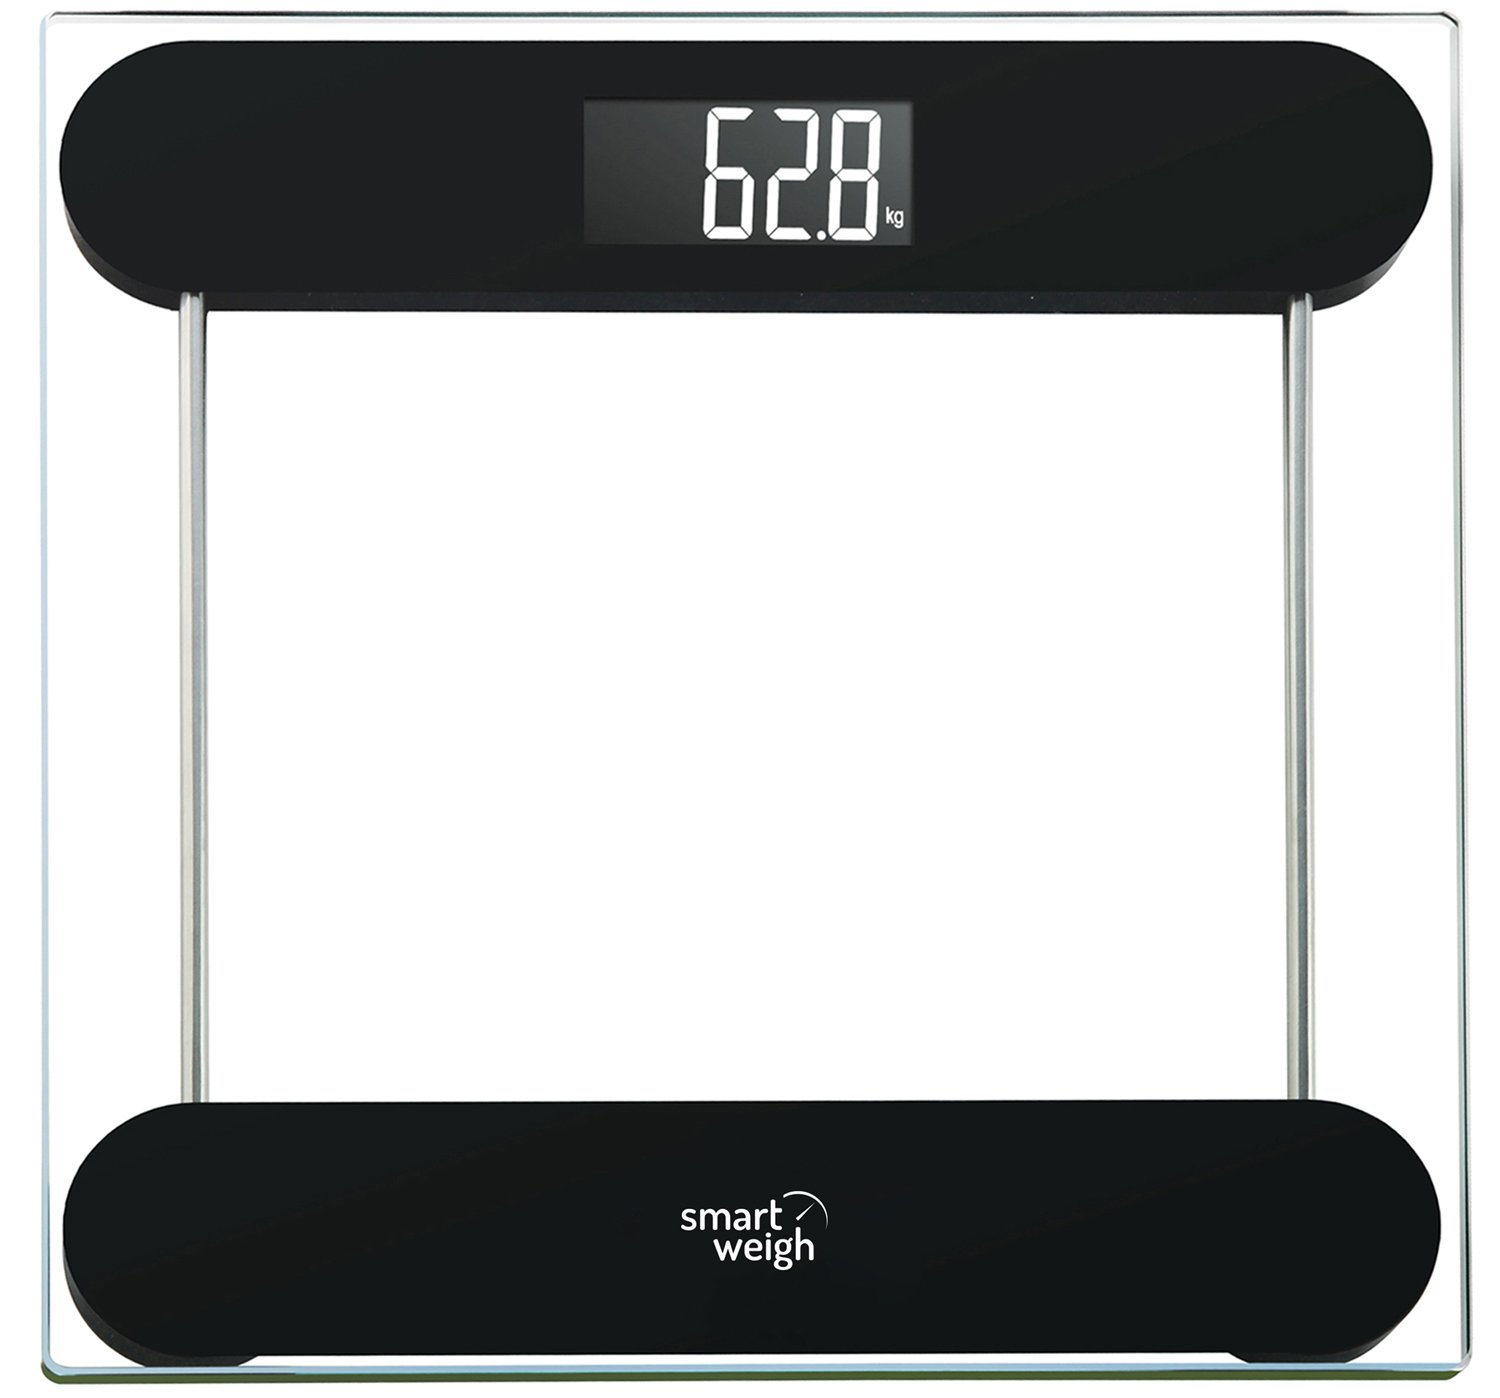 Smart Weigh Precision Digital Vanity/Bathroom Scale, Smart Step-On Technology, Tempered Glass Platform and Large Backlight Display